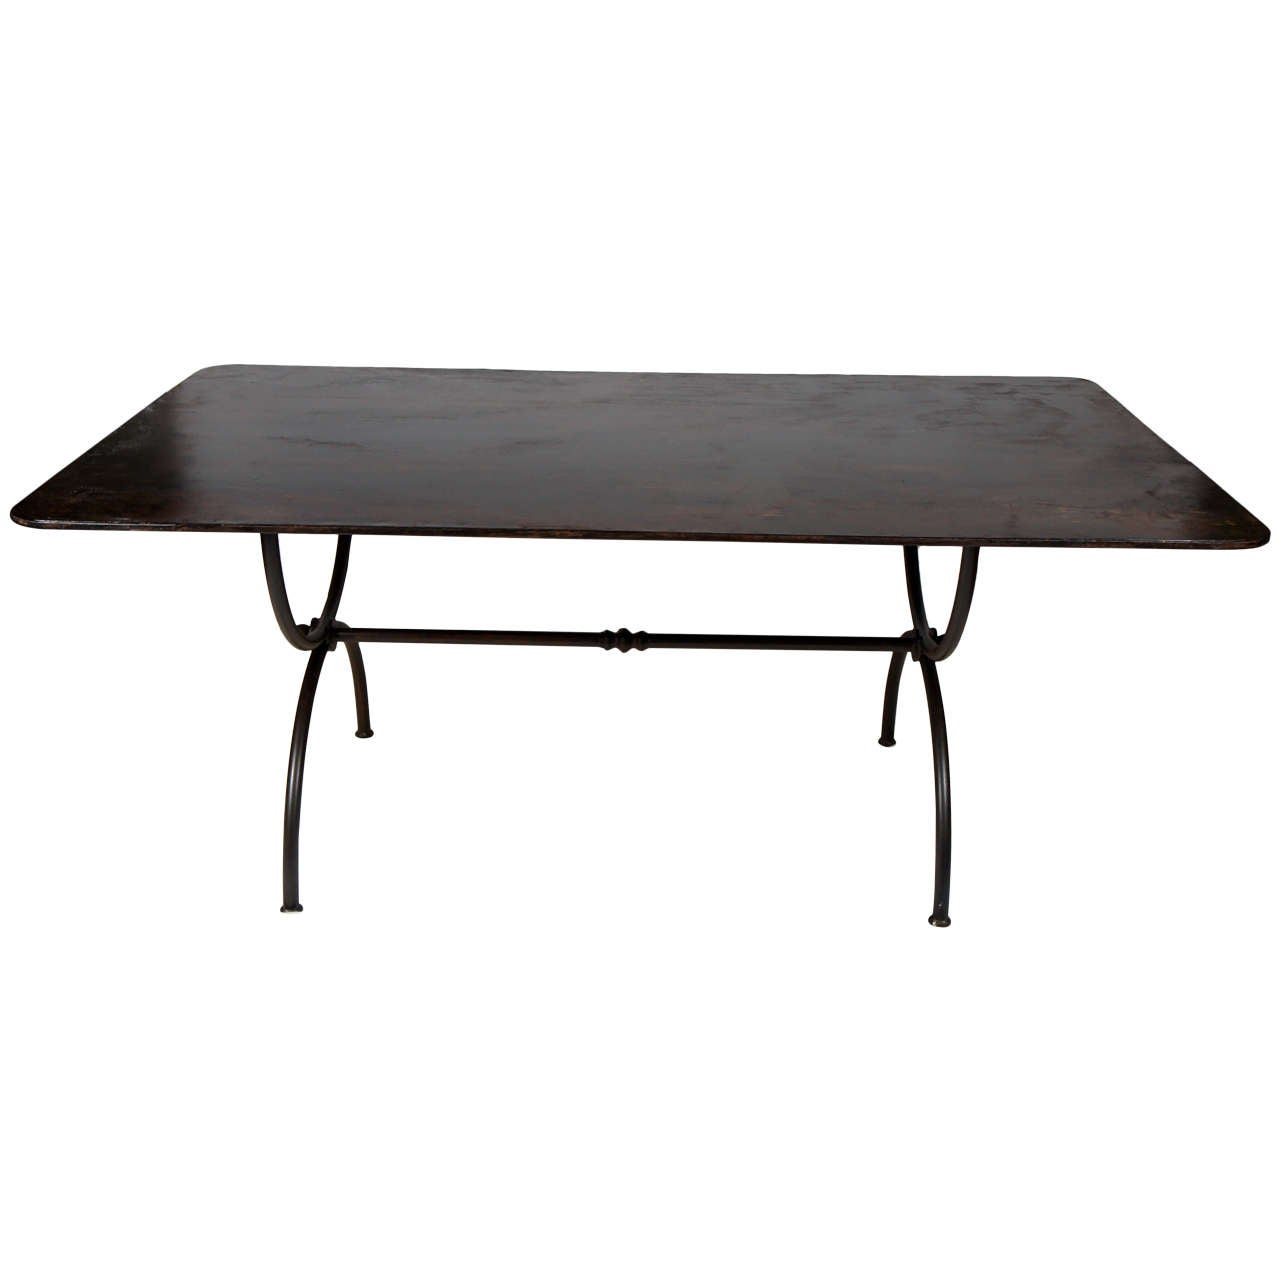 Metal Indoor Or Outdoor Garden Dining Table For Sale At